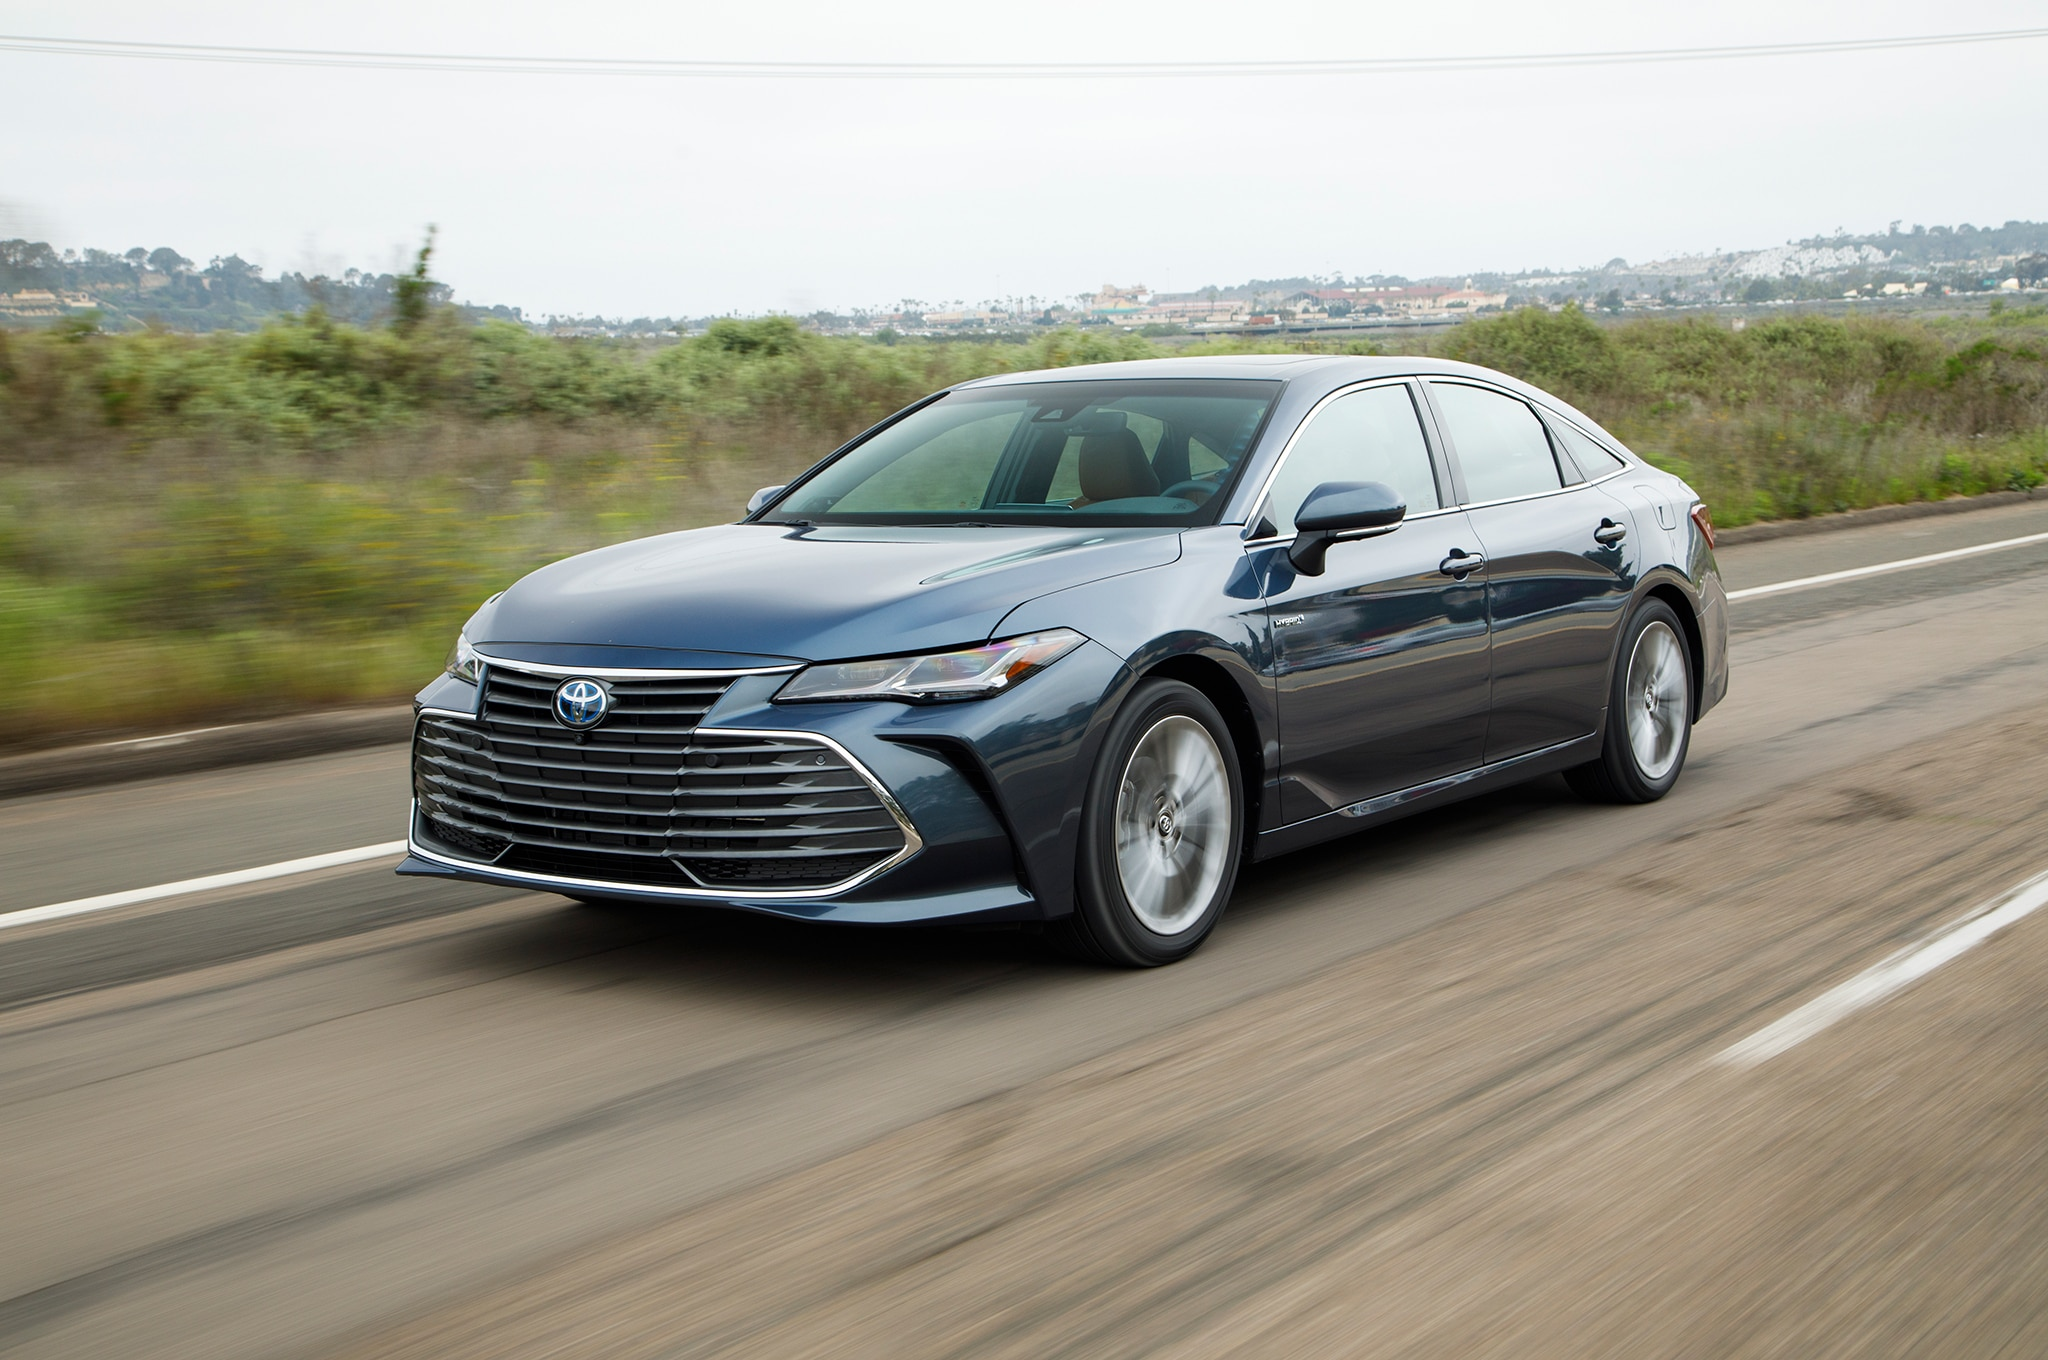 2019 toyota avalon first drive review automobile magazine. Black Bedroom Furniture Sets. Home Design Ideas